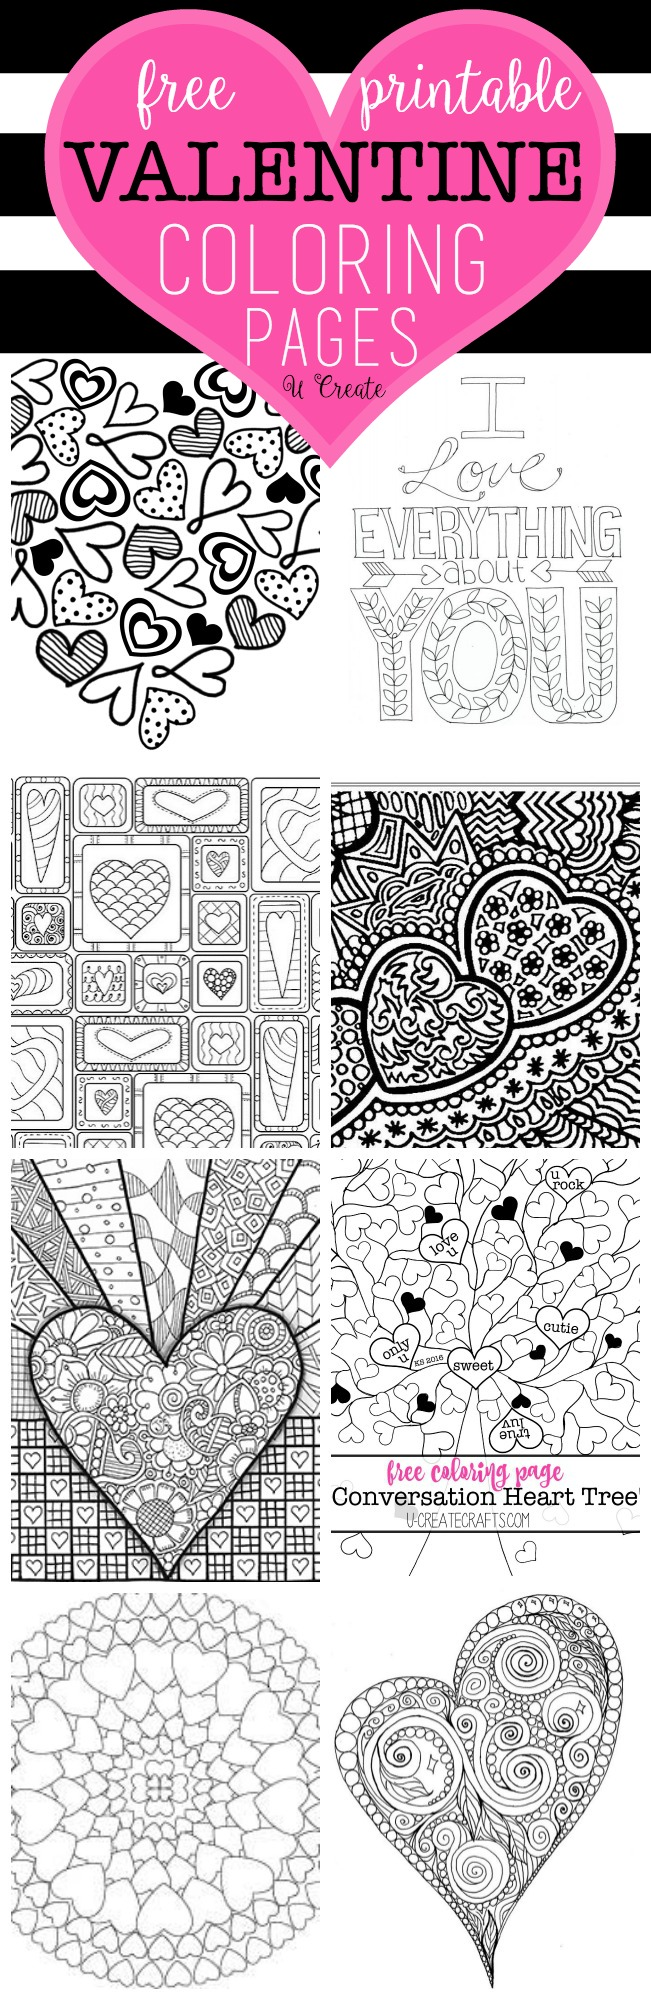 photograph regarding Printable Valentines Color Pages named Absolutely free Valentine Coloring Webpages - U Crank out